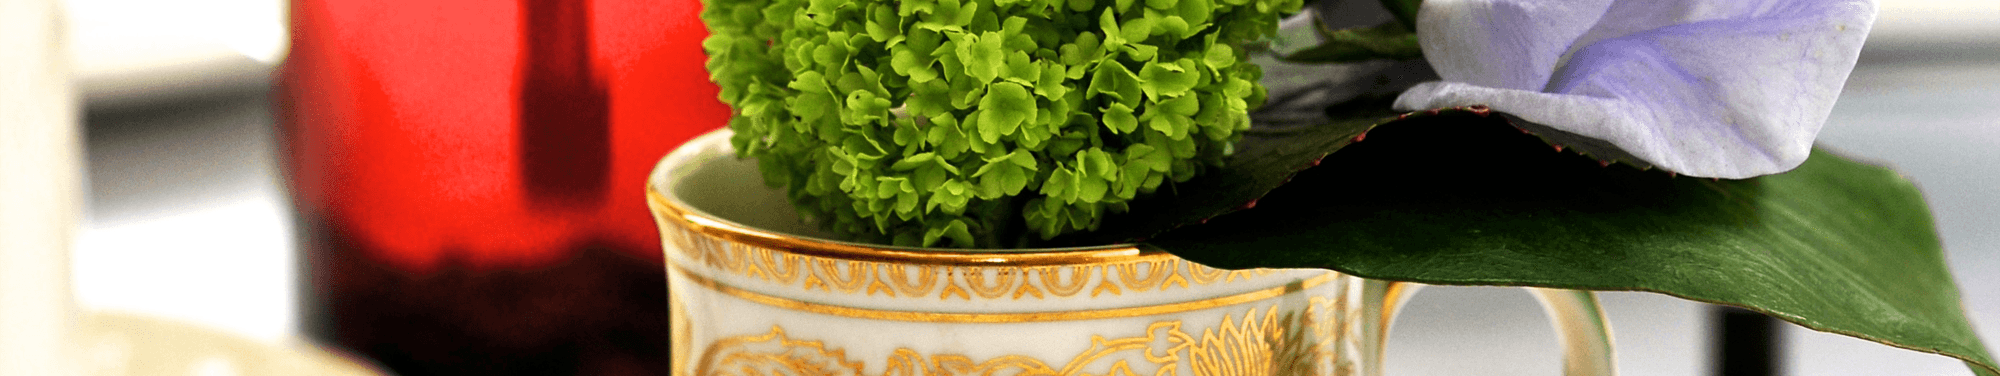 A close up photo showing a top part of vase and plant at Bartle Hall Hotel